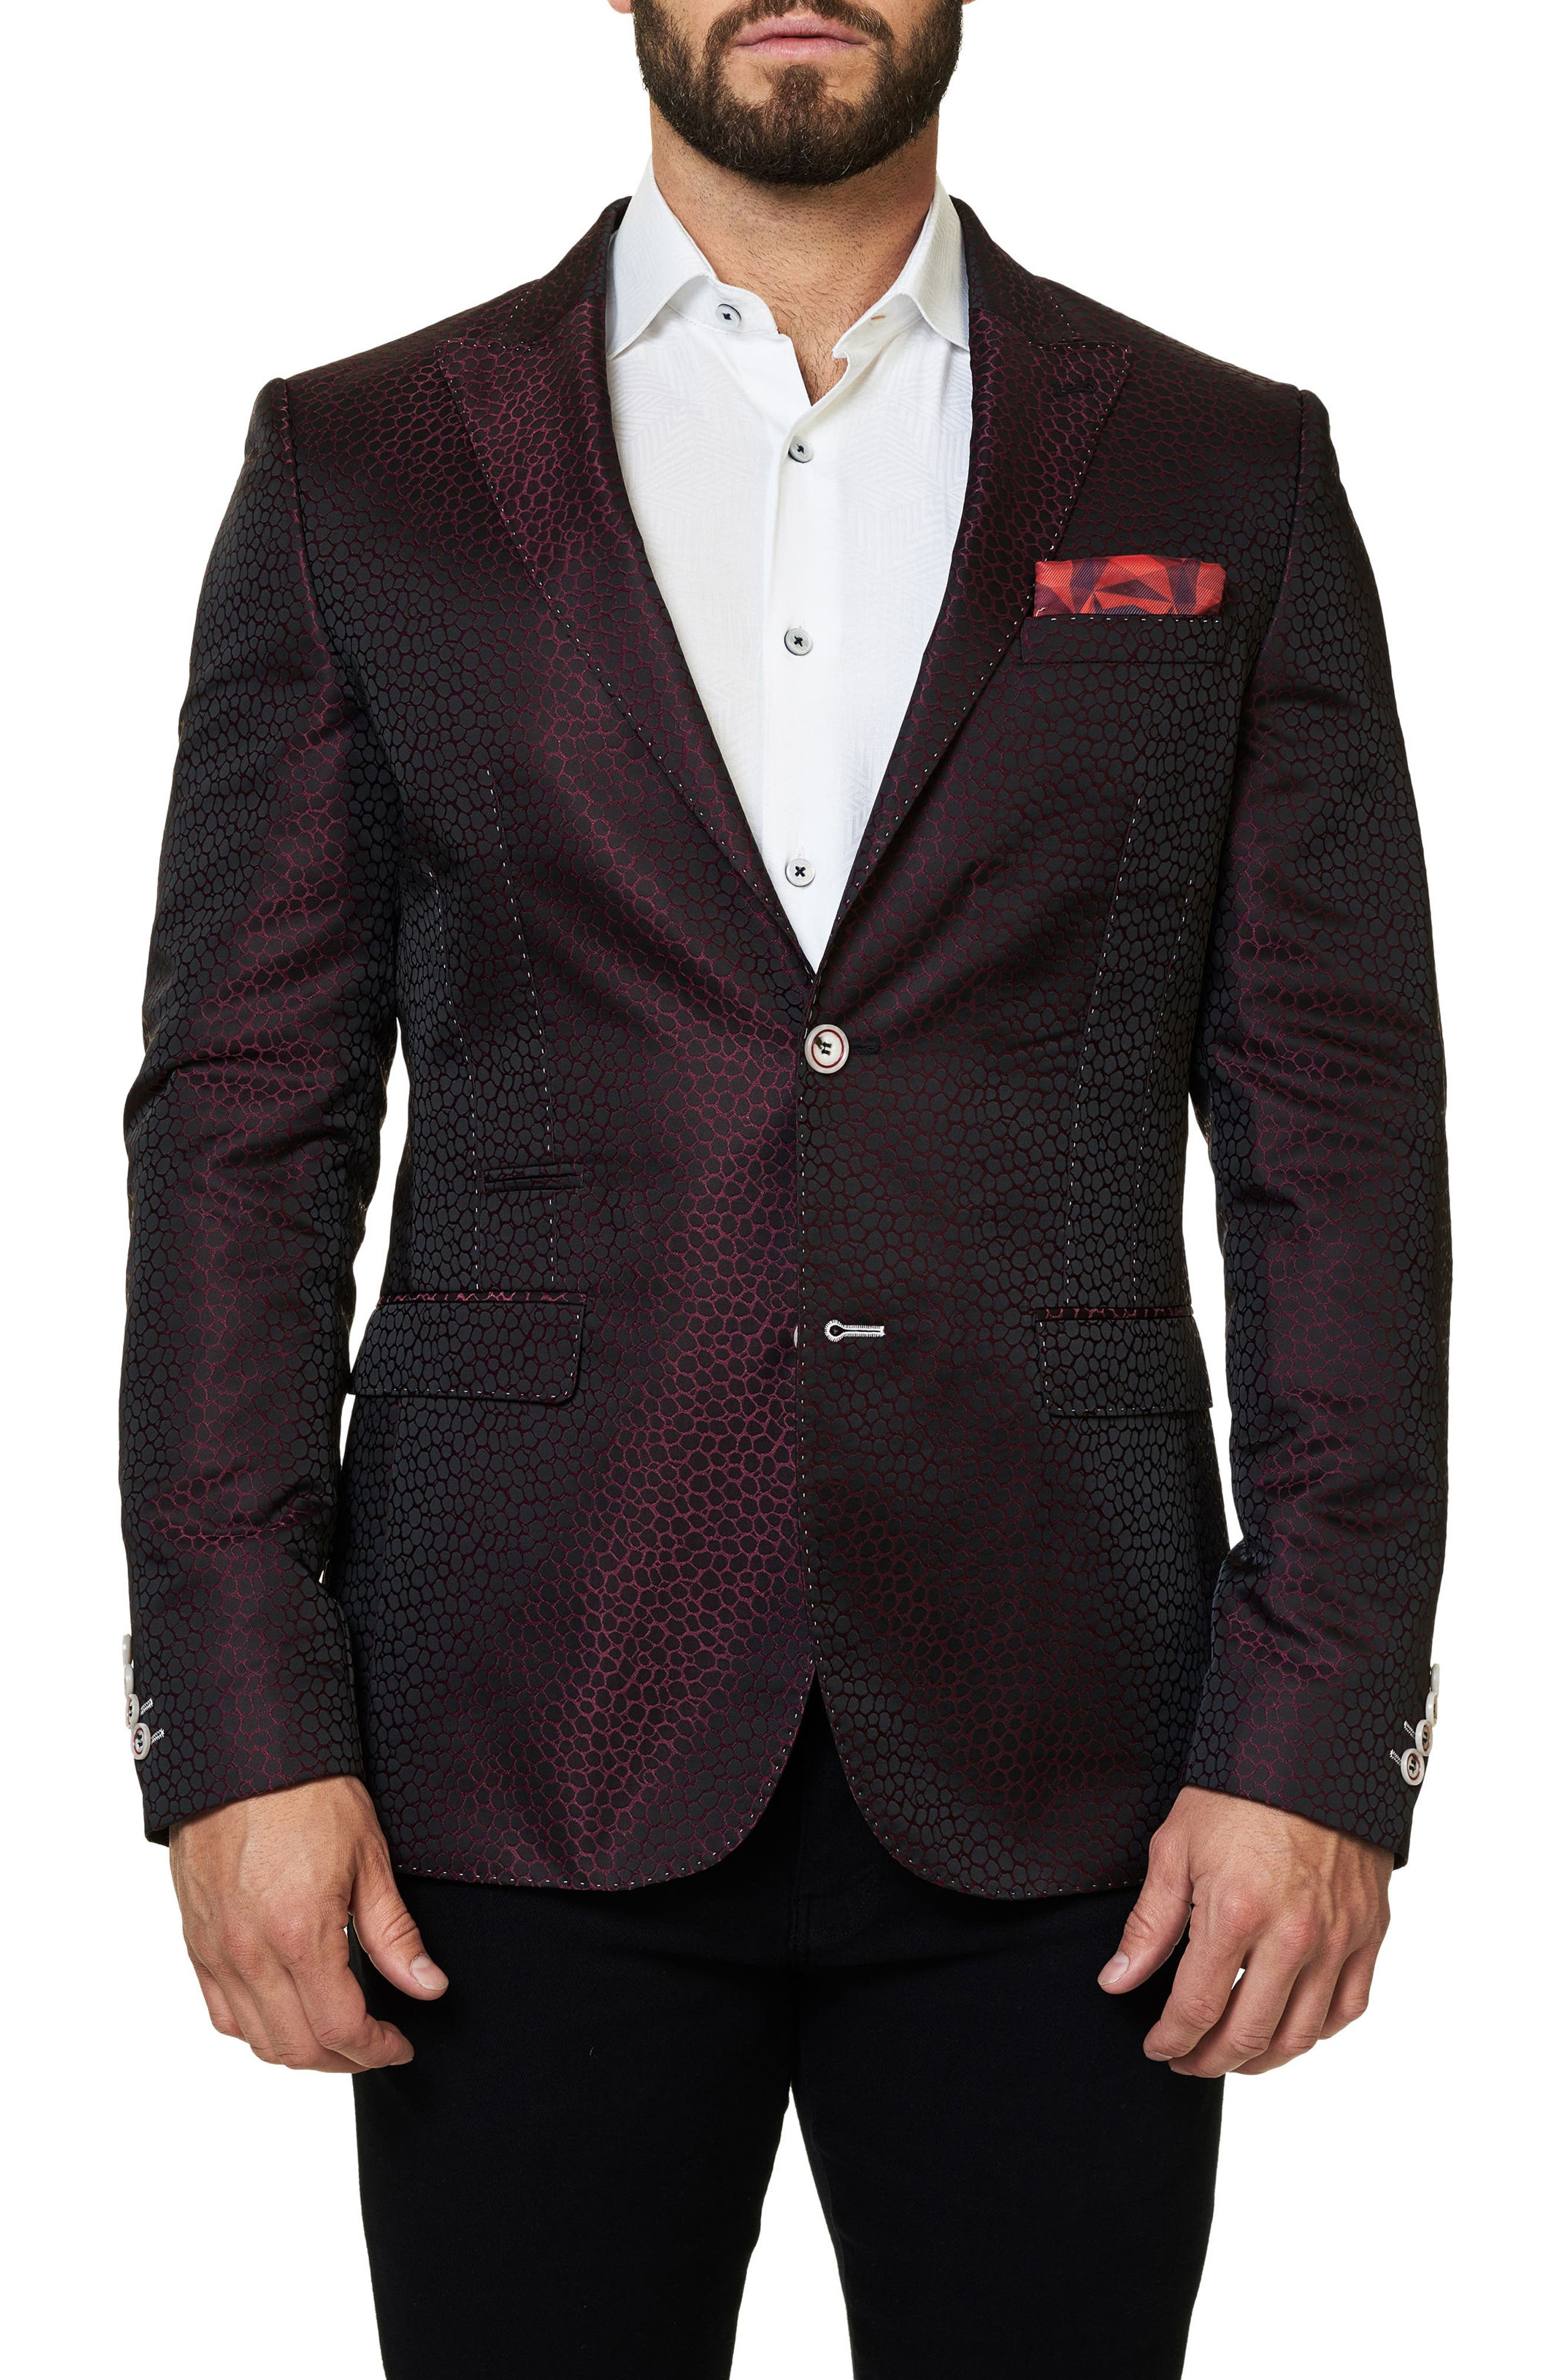 Alternate Image 1 Selected - Maceoo Elegance Jacquard Sport Coat